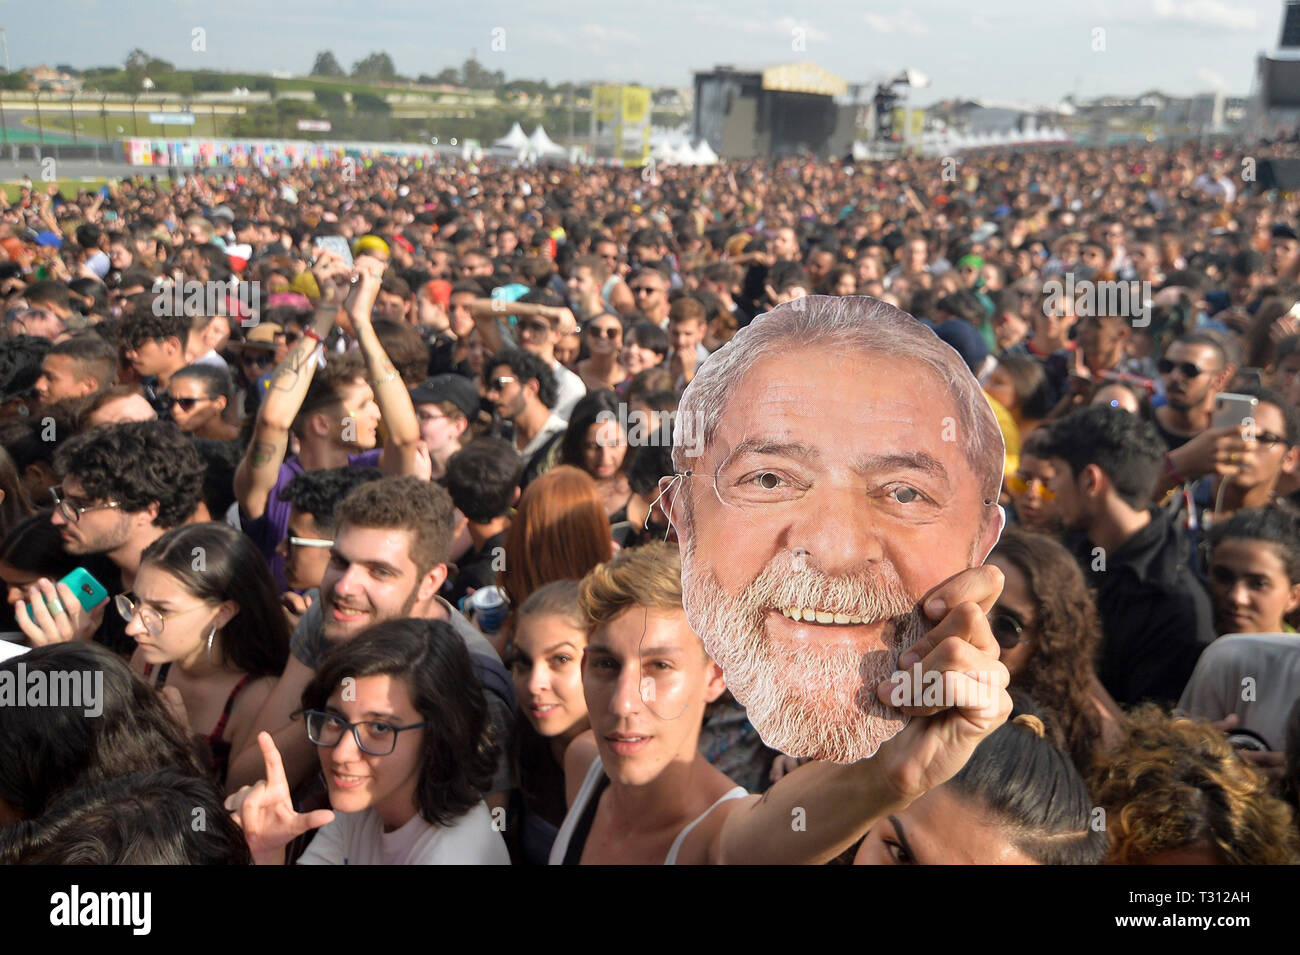 Sao Paulo, Brazil. 05th Apr, 2019. mask of former president Luiz Inácio Lula da Silva in the festival Lollapalooza 2019, (PHOTO: LEVI BIANCO/BRAZIL PHOTO PRESS) Credit: Brazil Photo Press/Alamy Live News - Stock Image